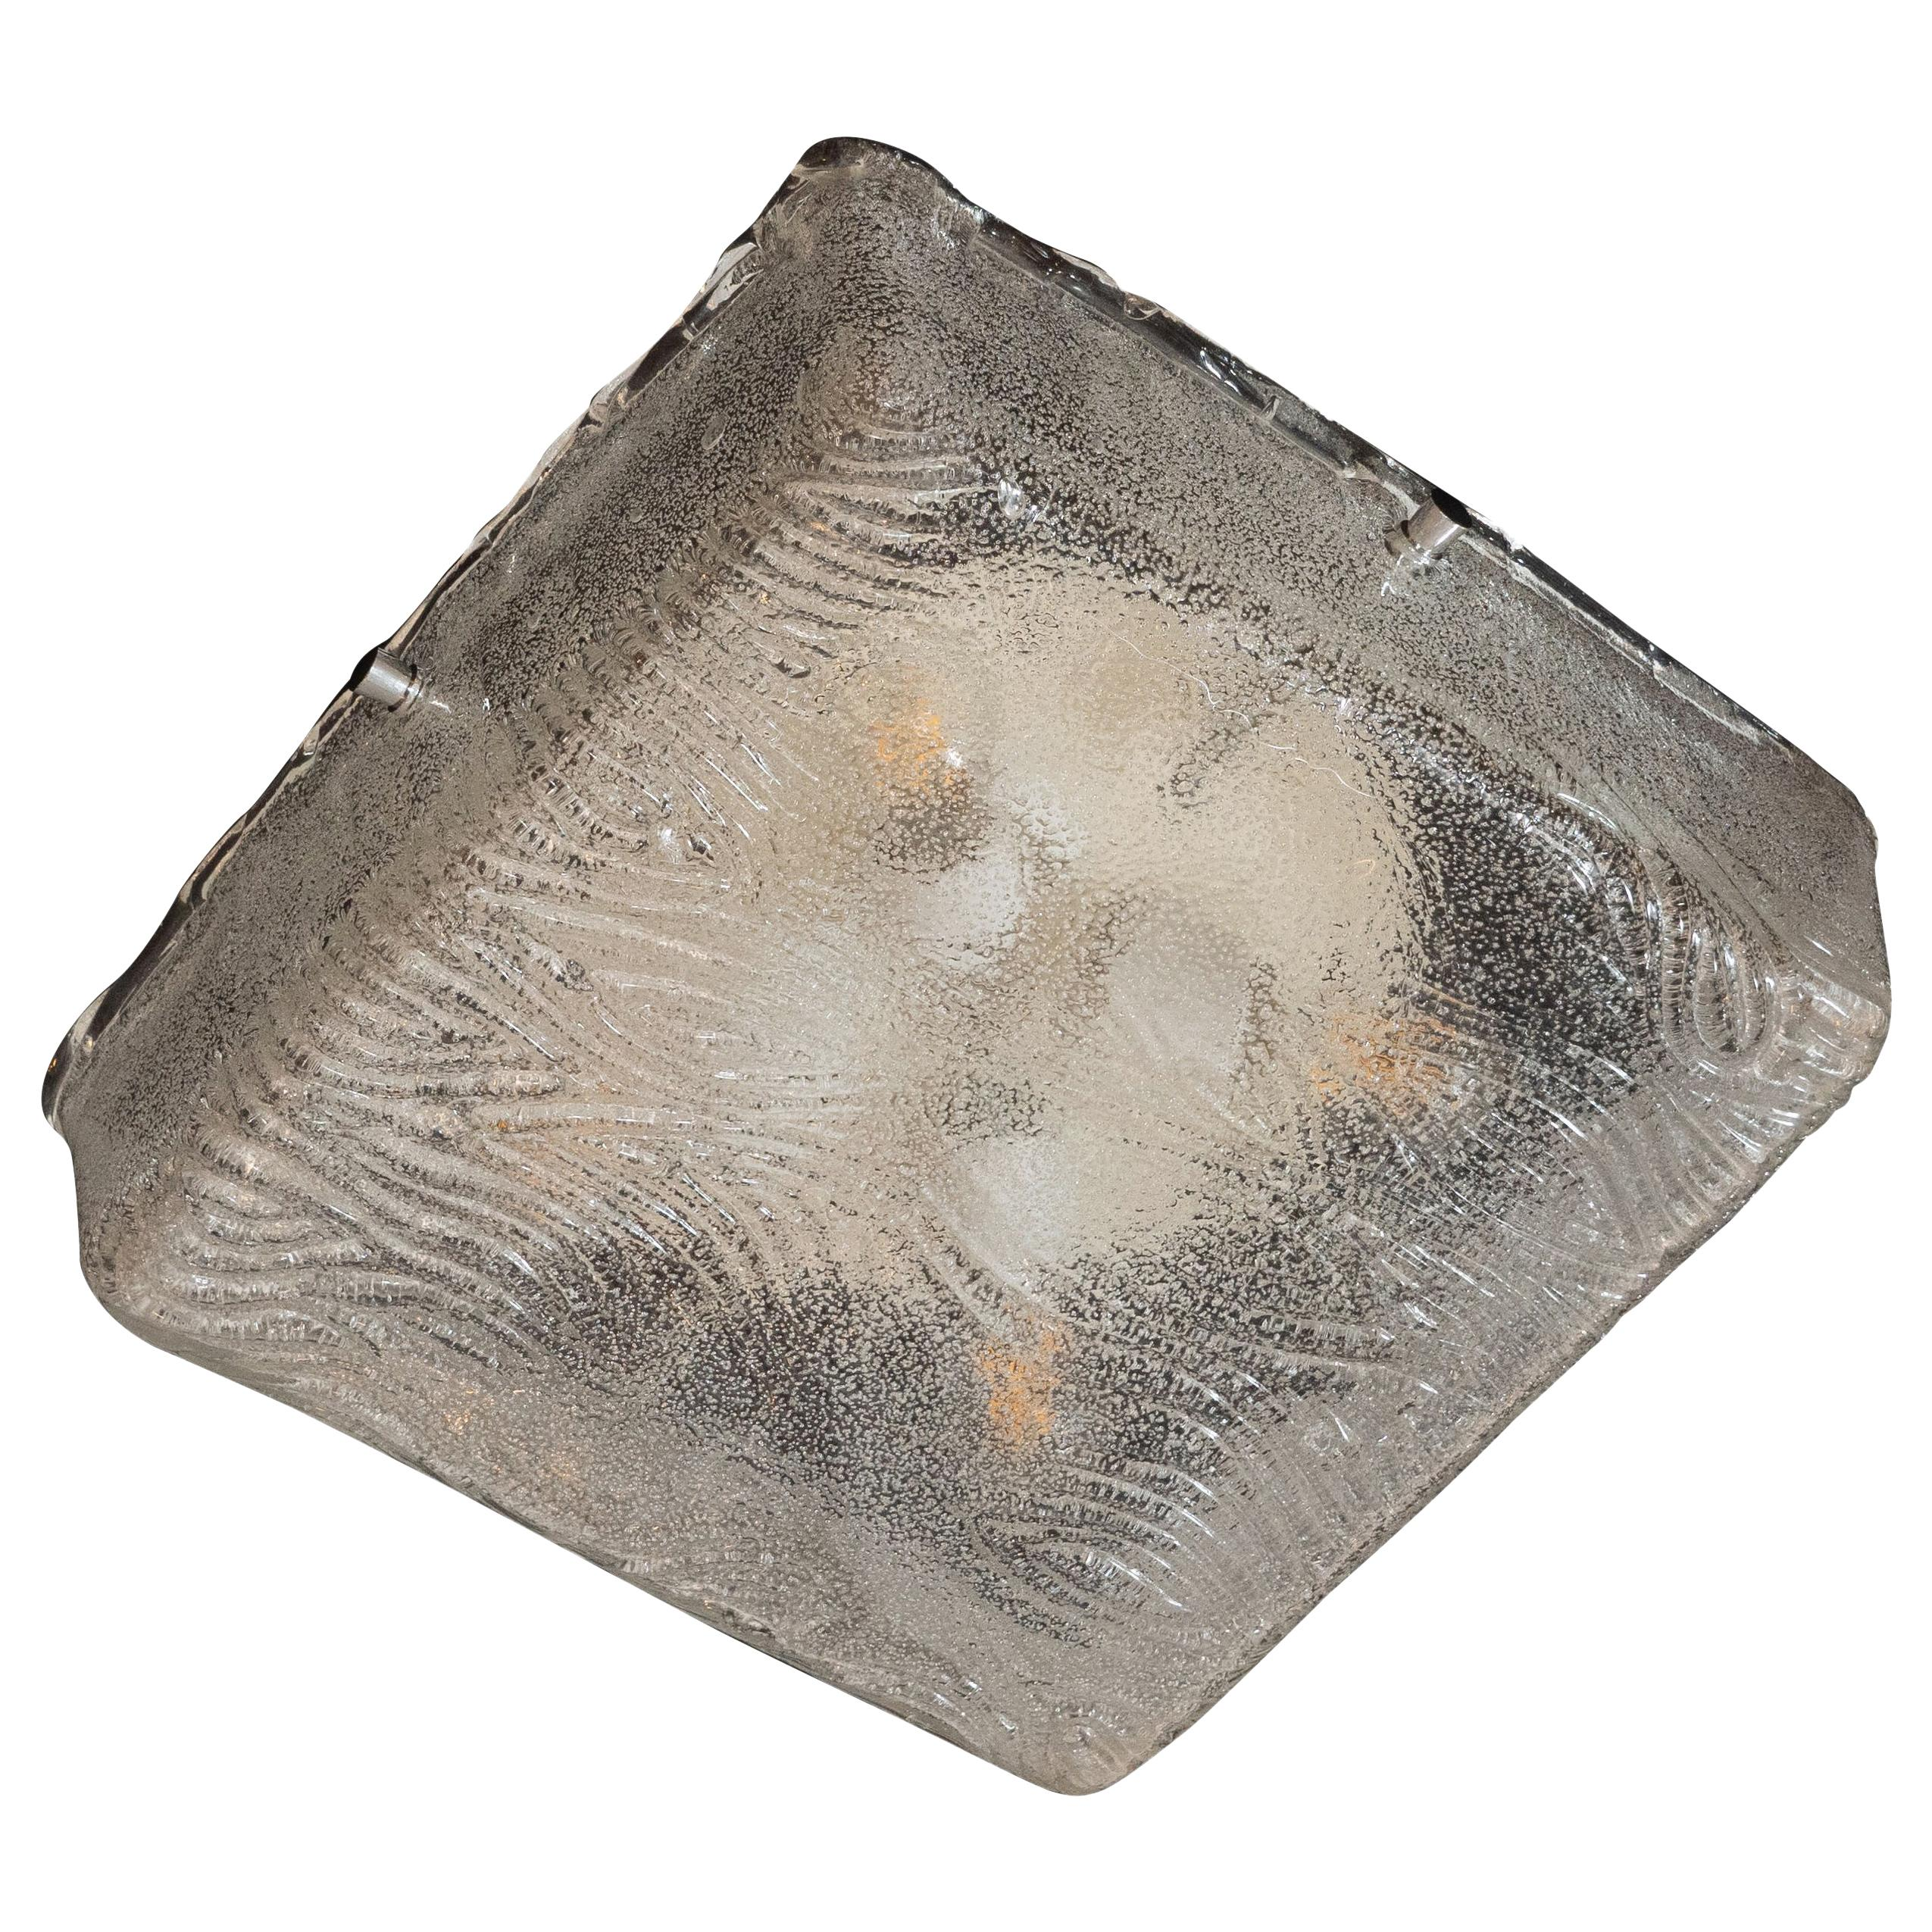 Mid-Century Modern Square Flush Mount in Textured Glass with Chrome Fittings